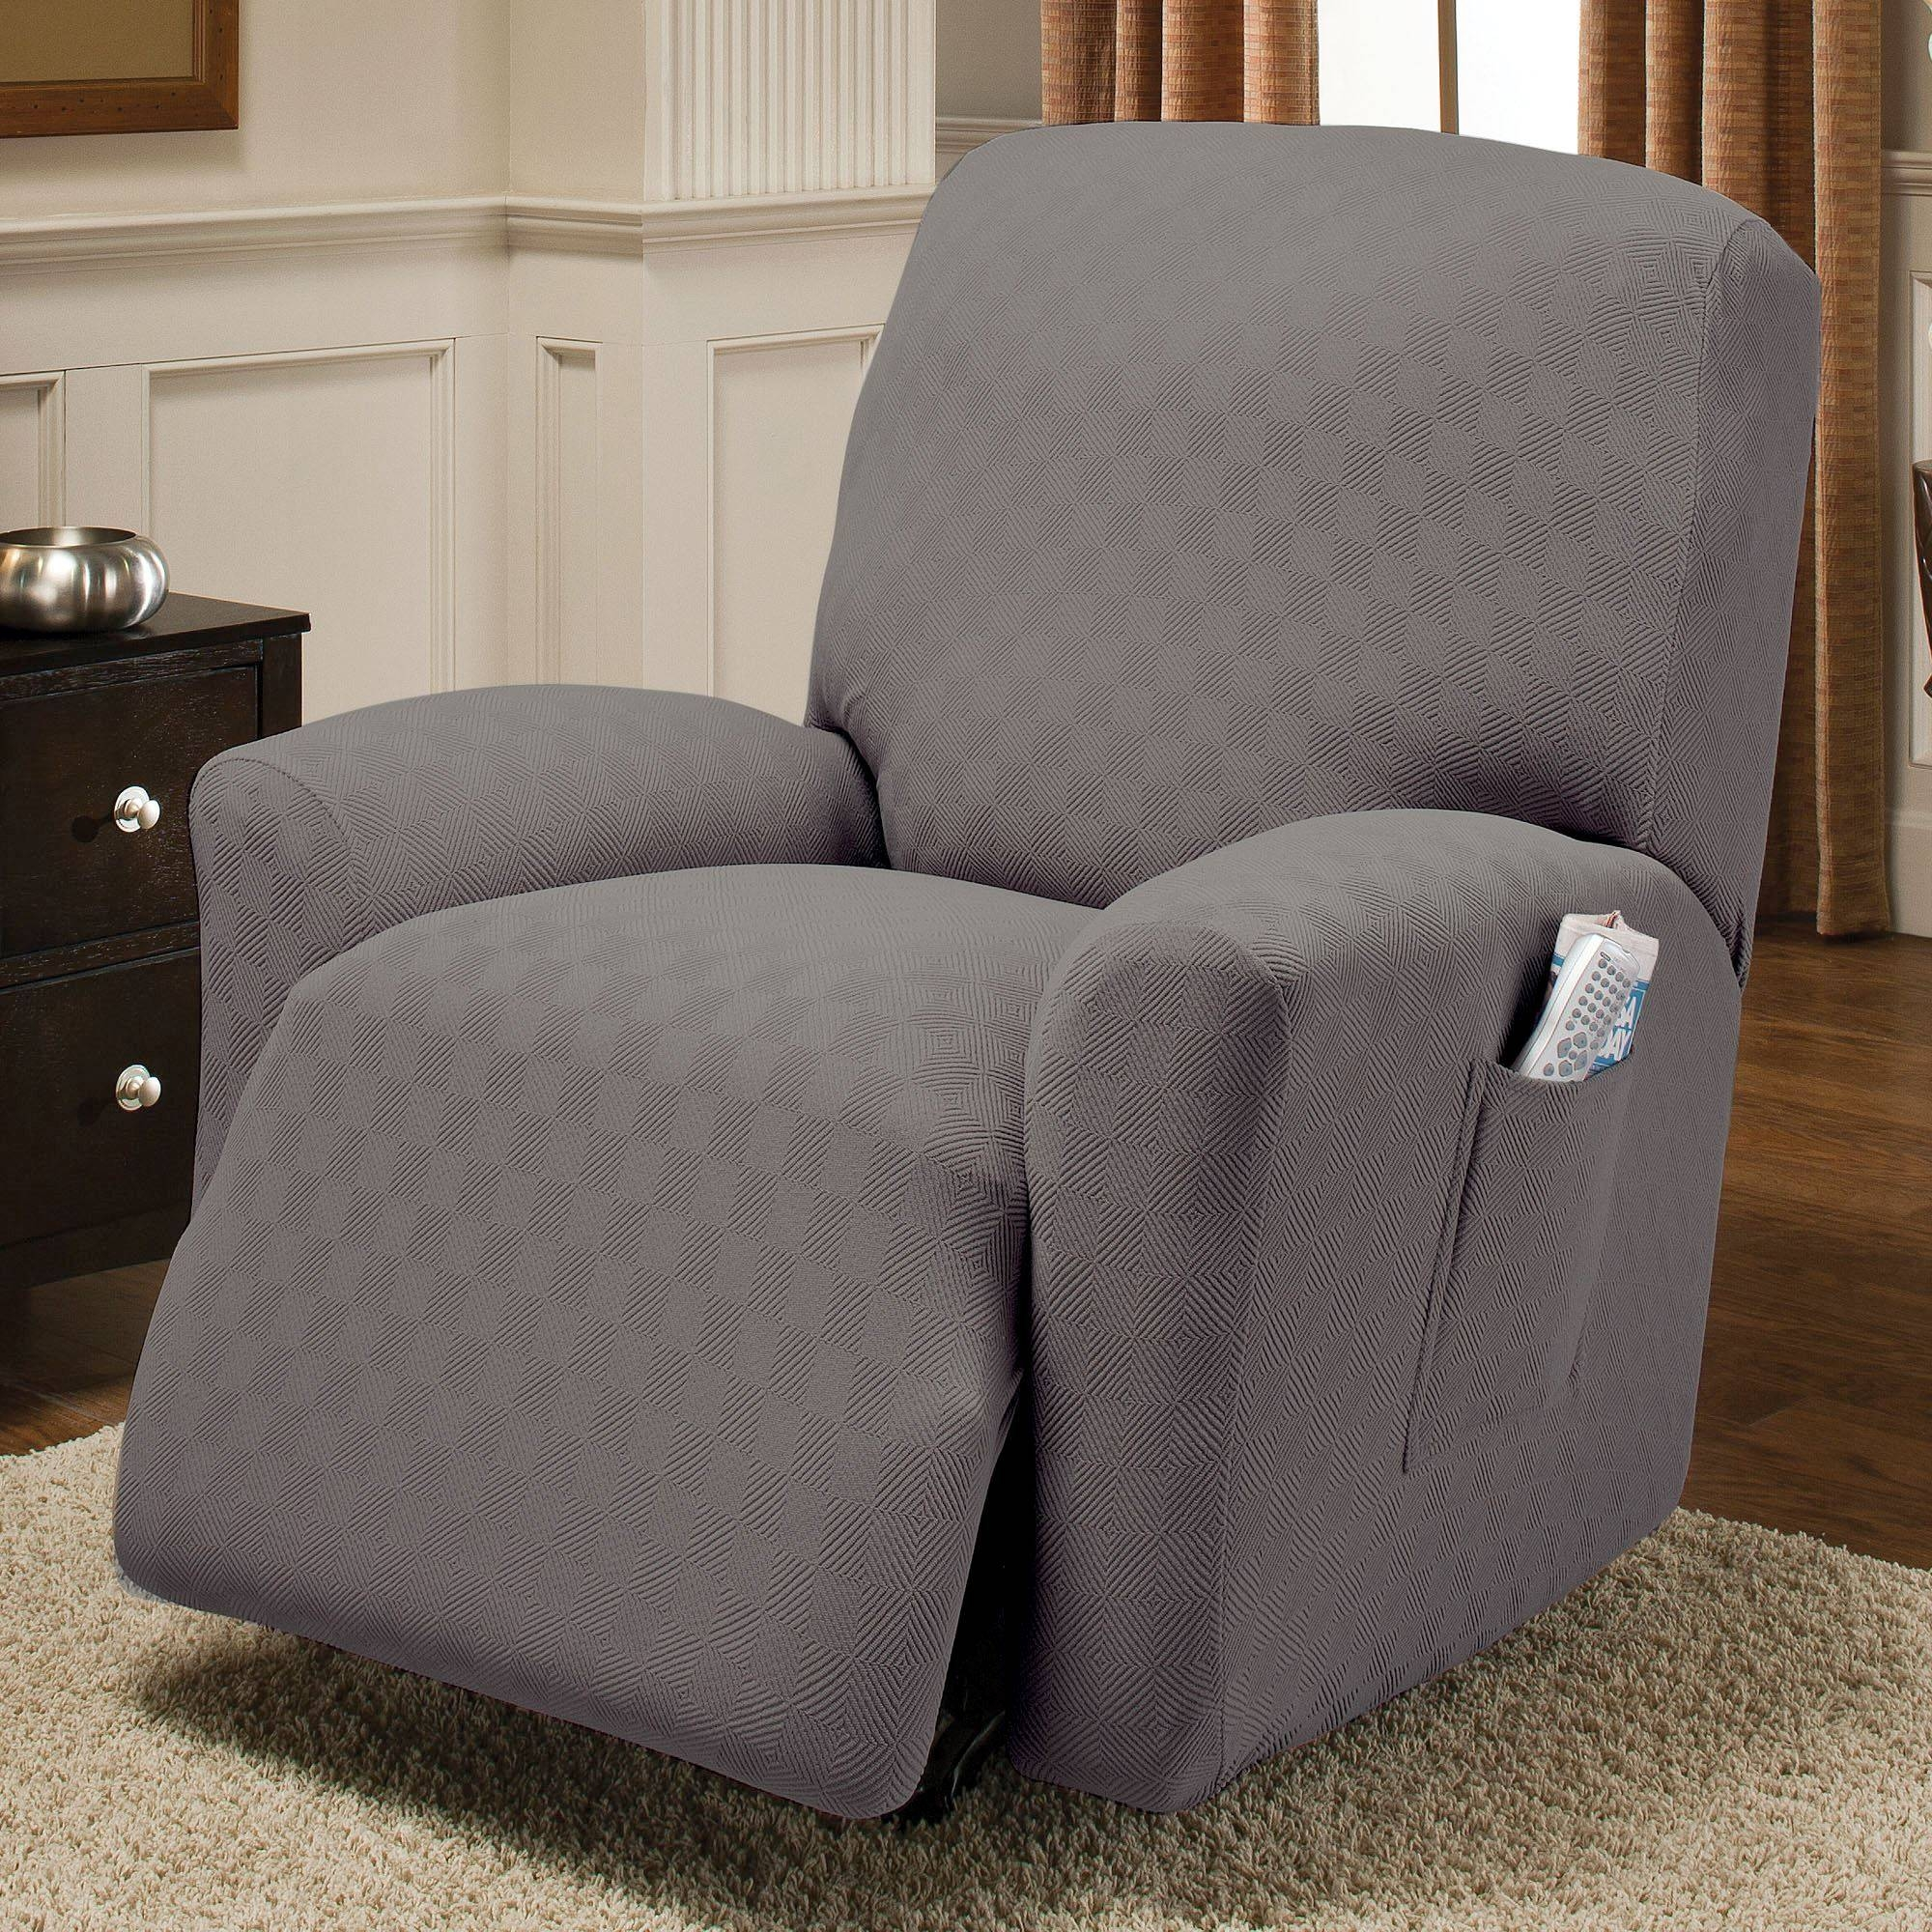 Popular Photo of Stretch Covers For Recliners